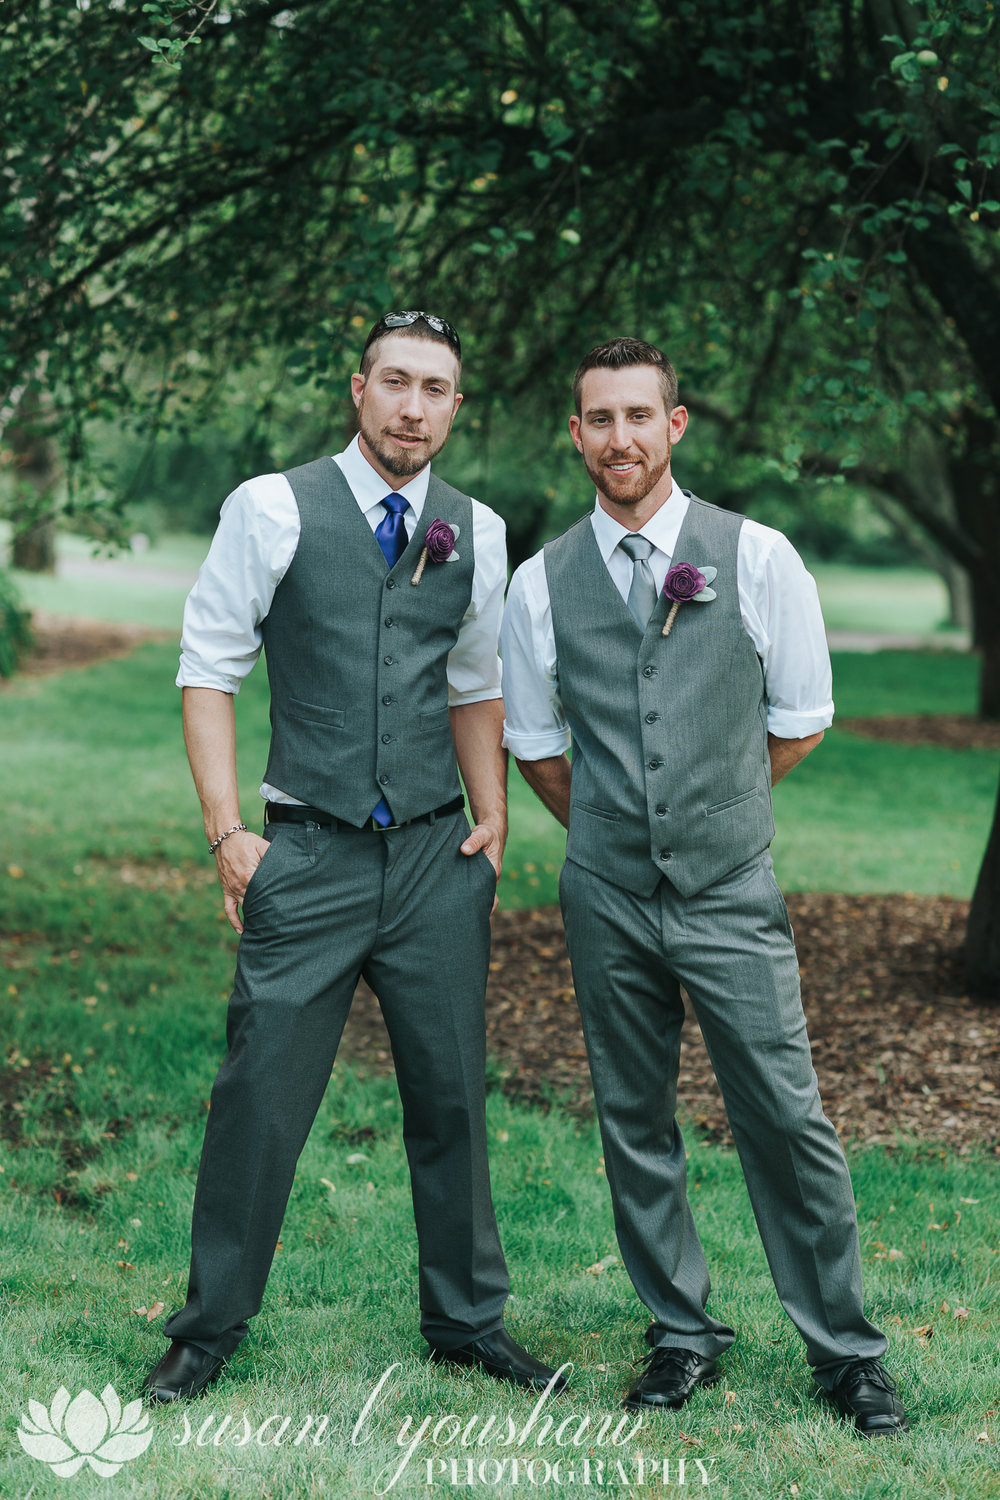 BLOG Kissy and Zane Diehl 07-14-2018 SLY Photography-86.jpg